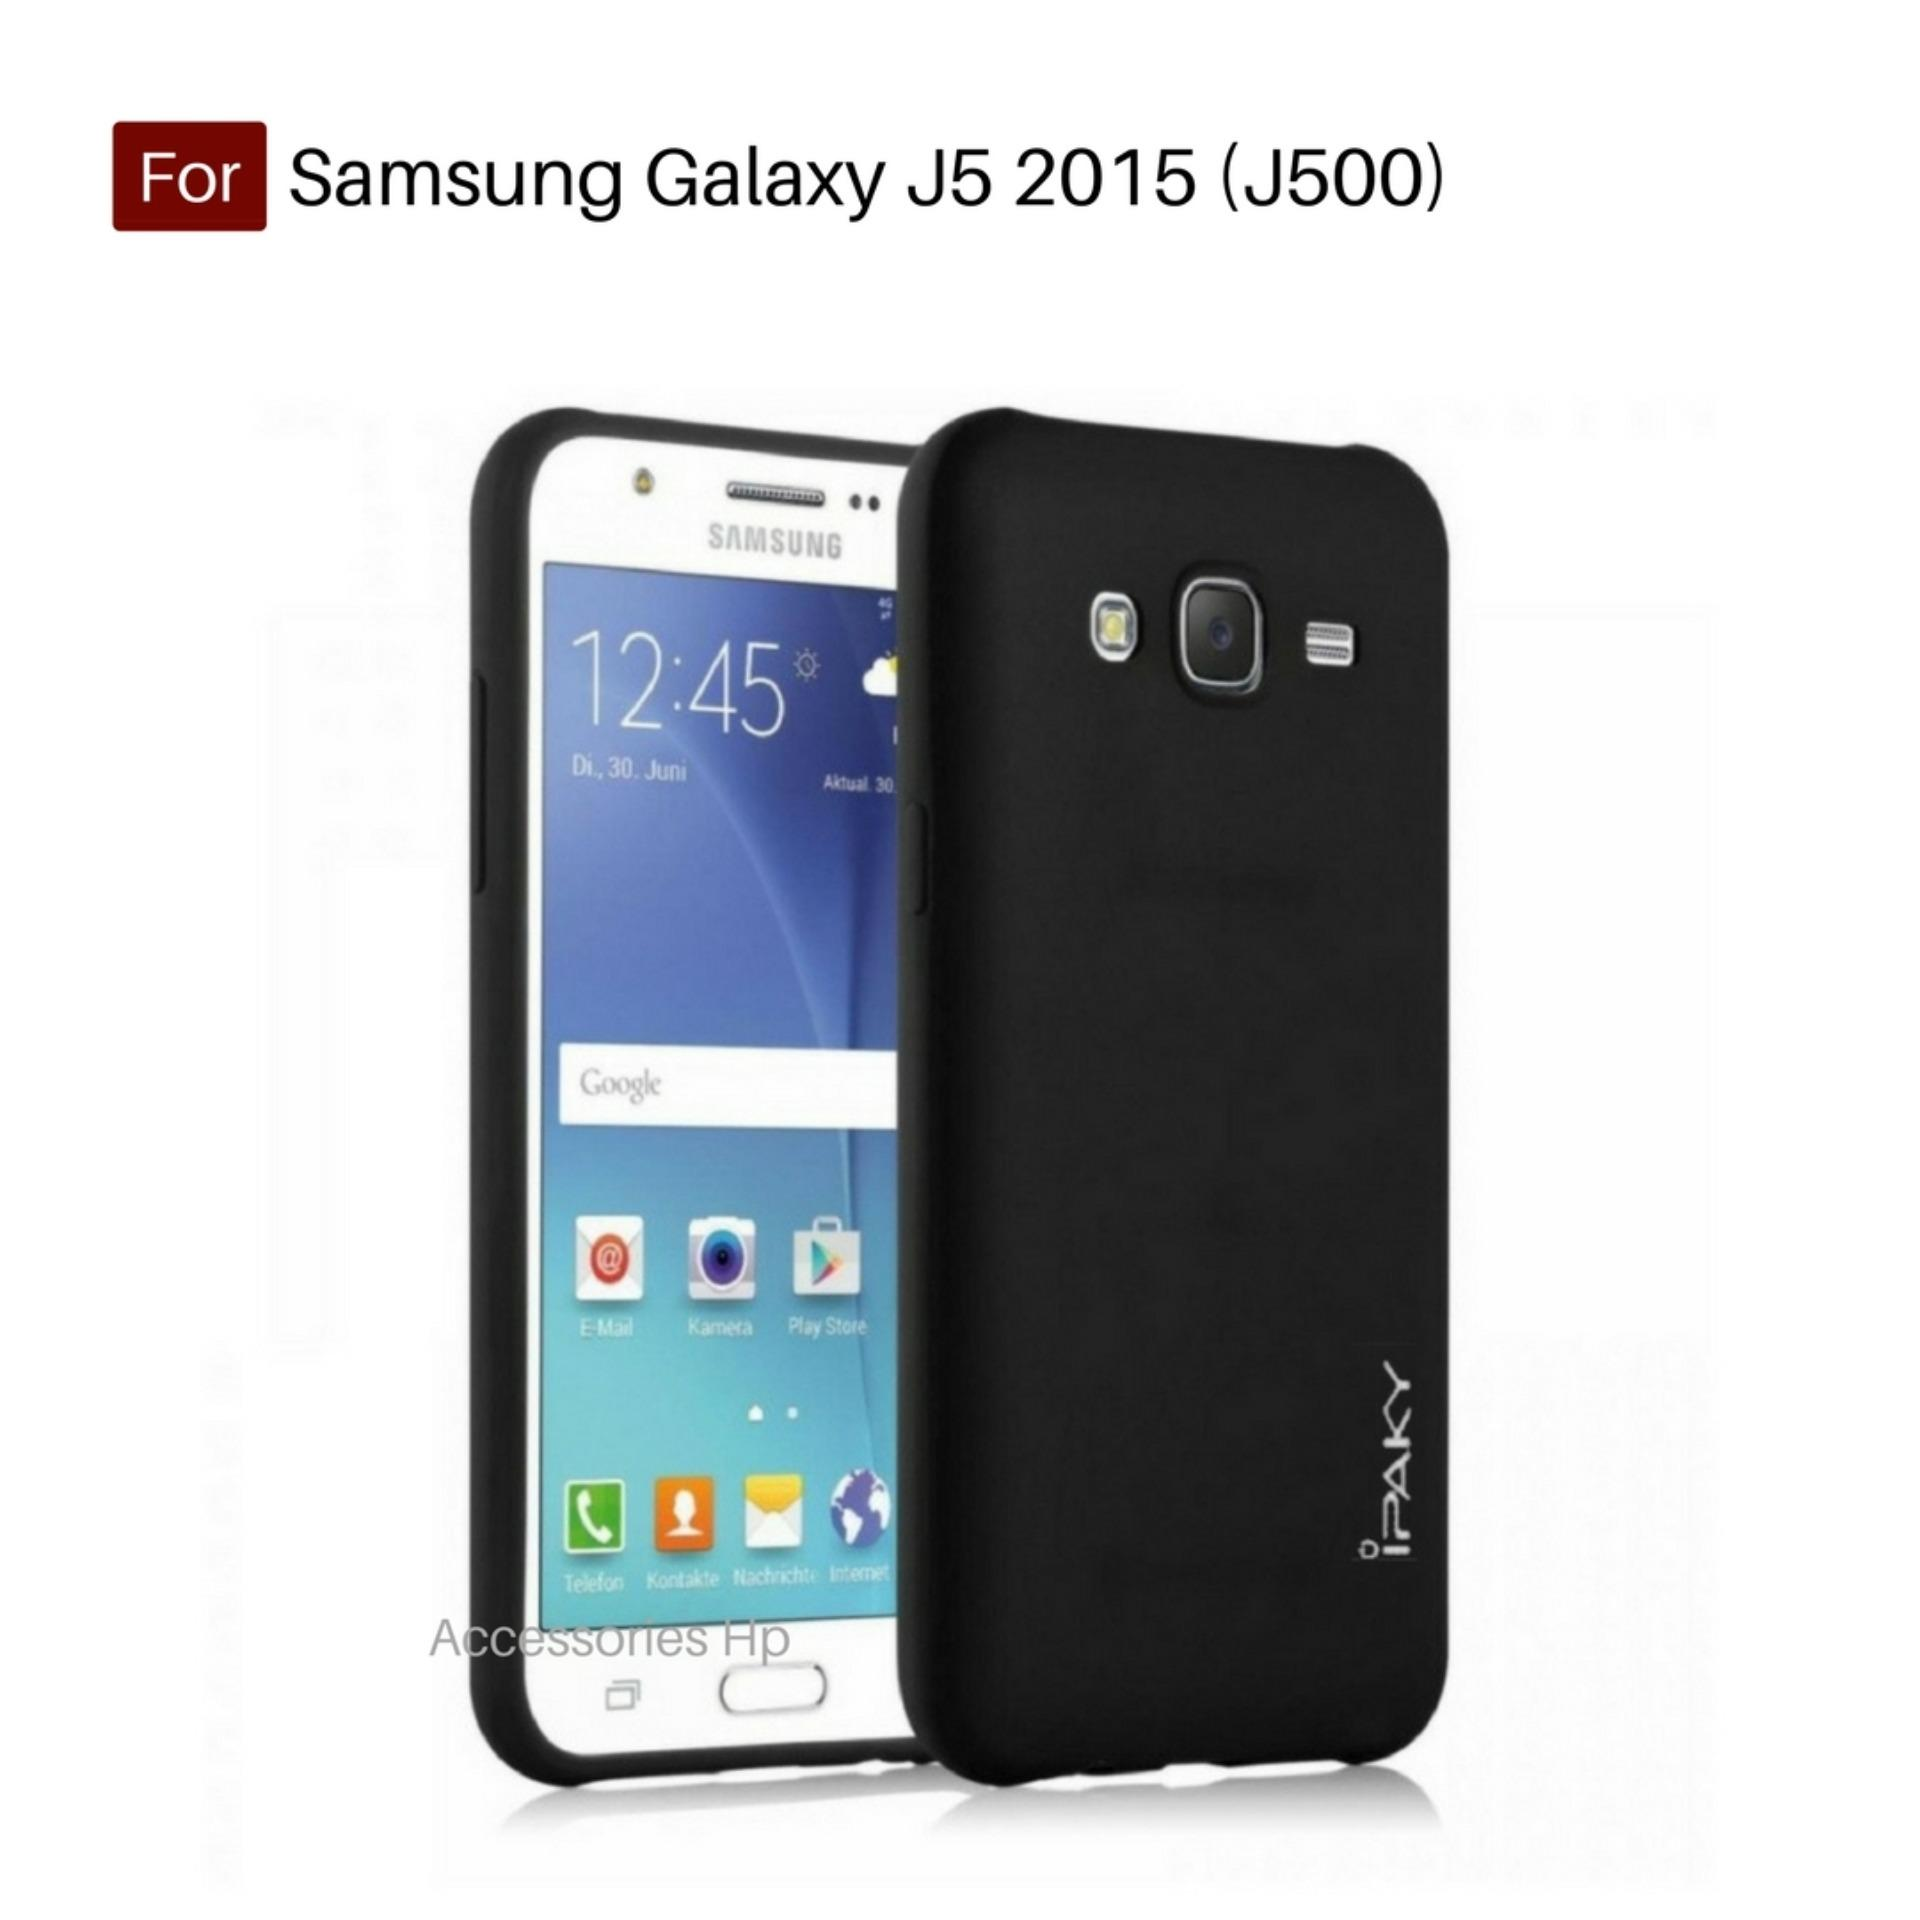 Accessories Hp iPaky Super Slim Matte Anti Fingerprint Hybrid Case For Samsung Galaxy J5 2015 (J500) - Black